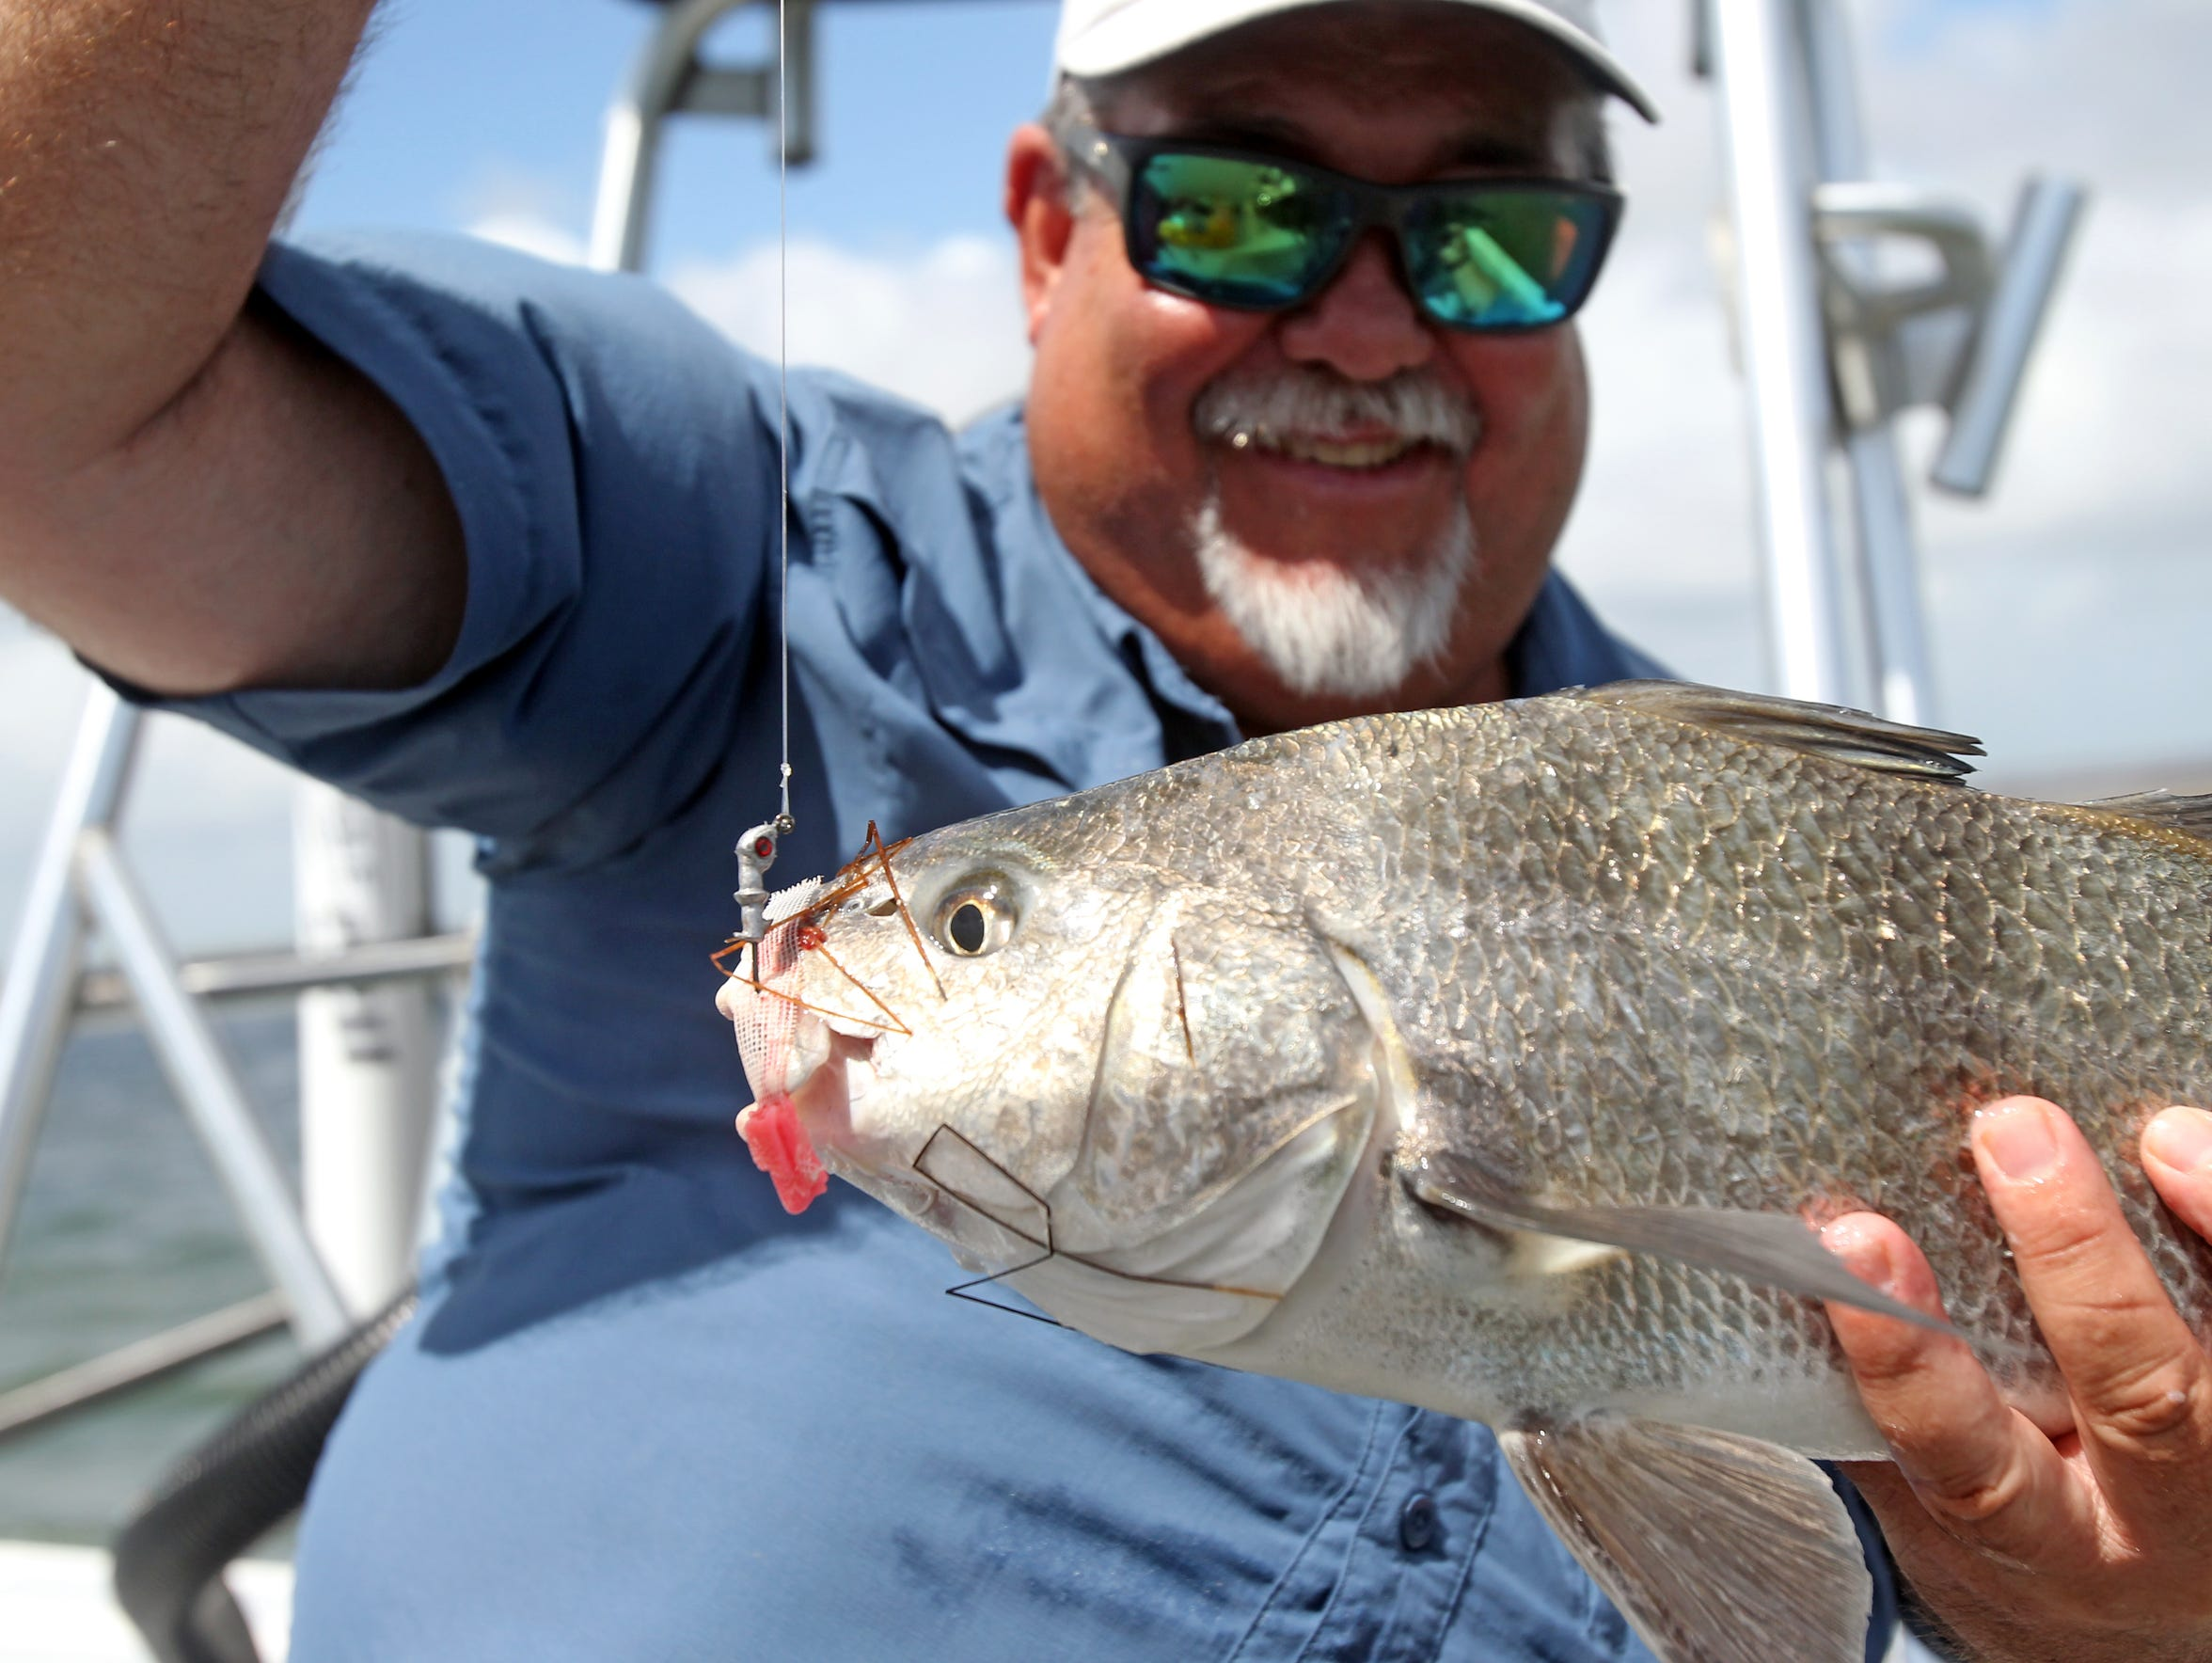 Many anglers enjoy sightcasting for drum and redfish